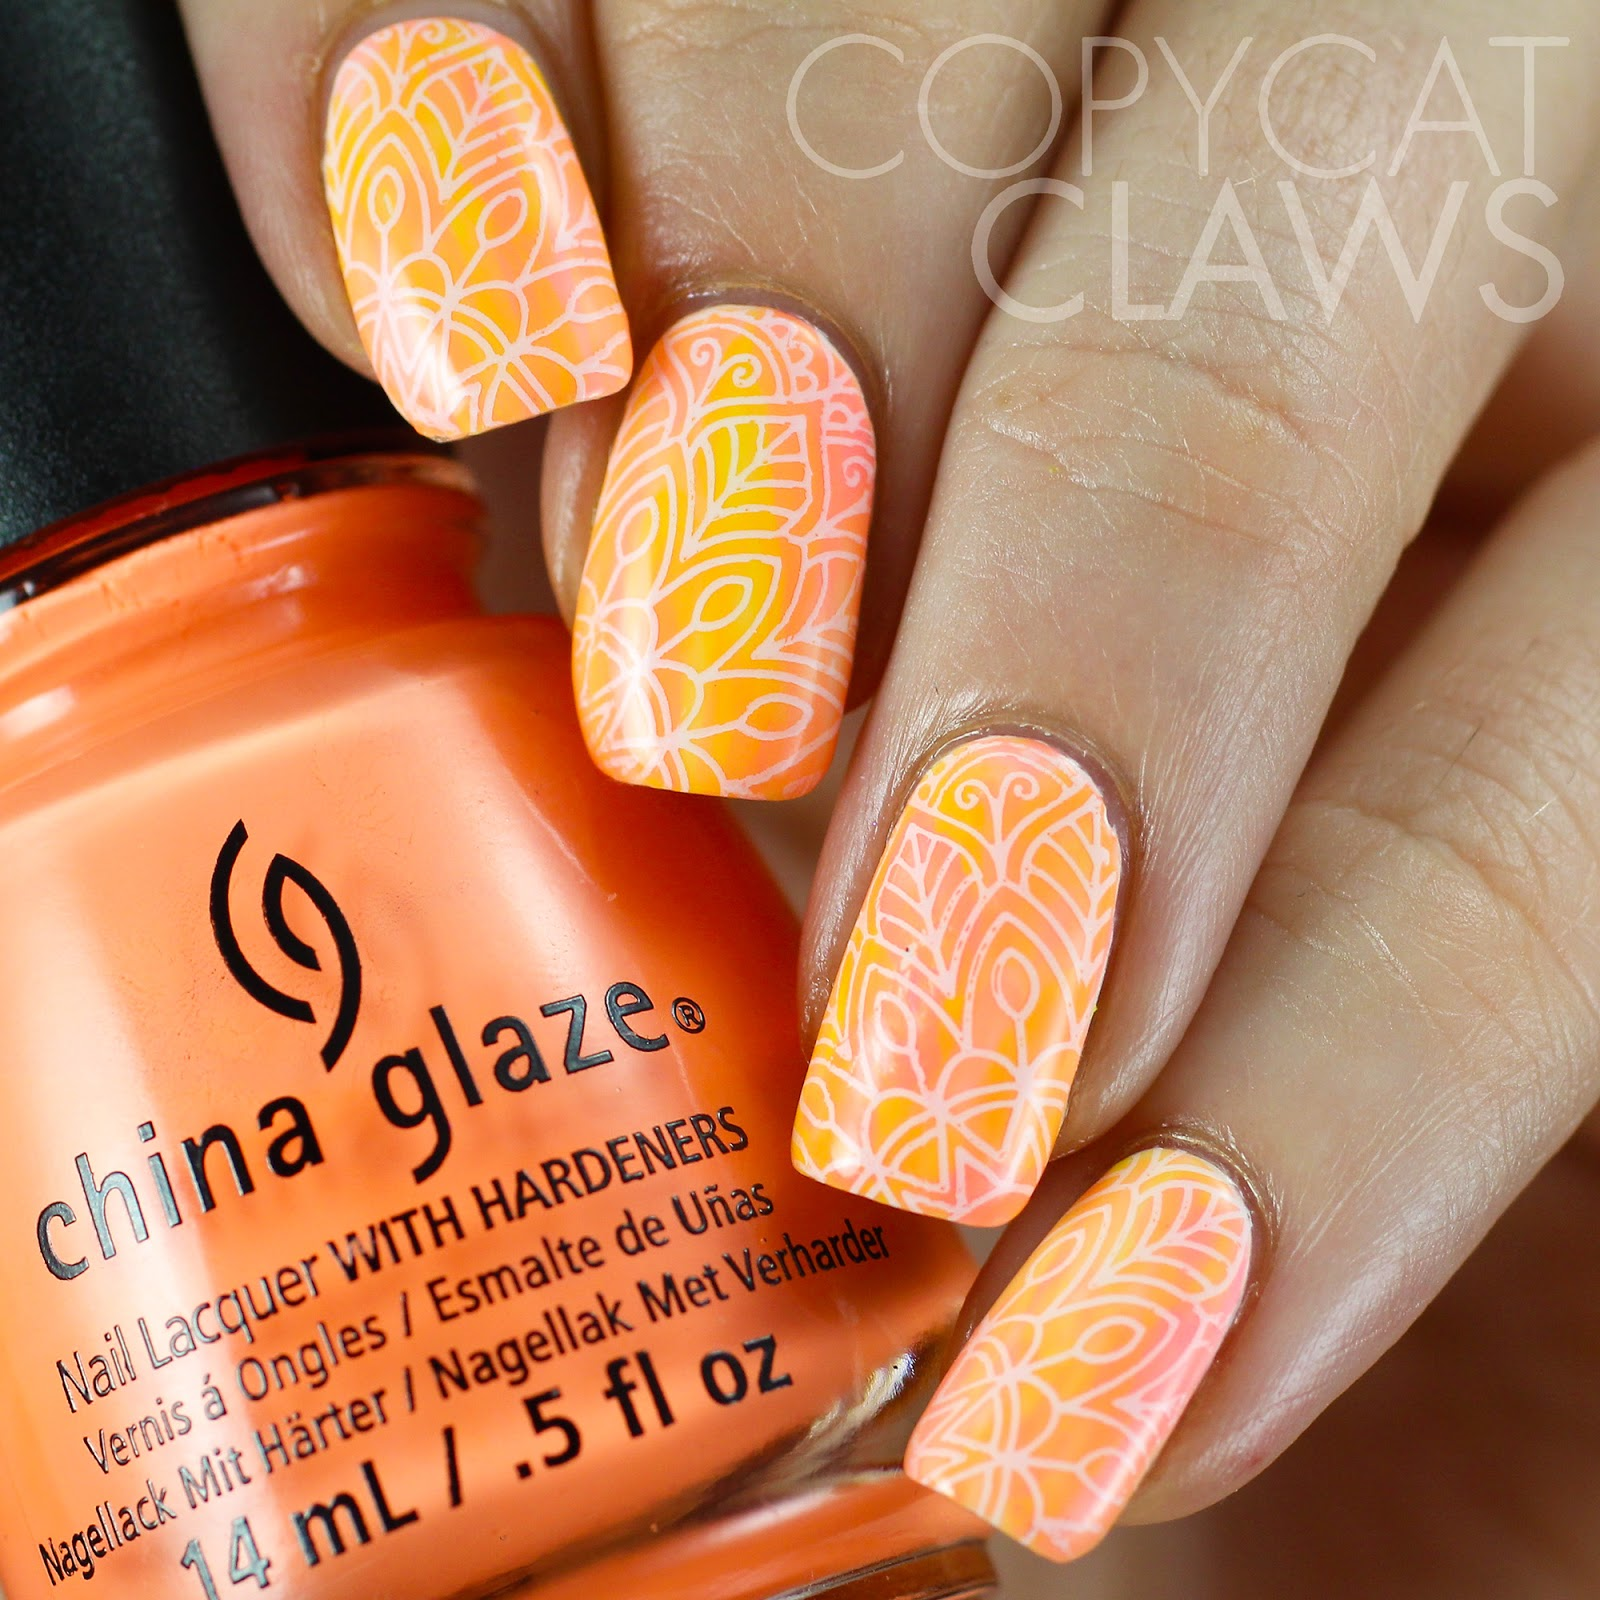 Copycat Claws: Neon Watercolor Nail Art